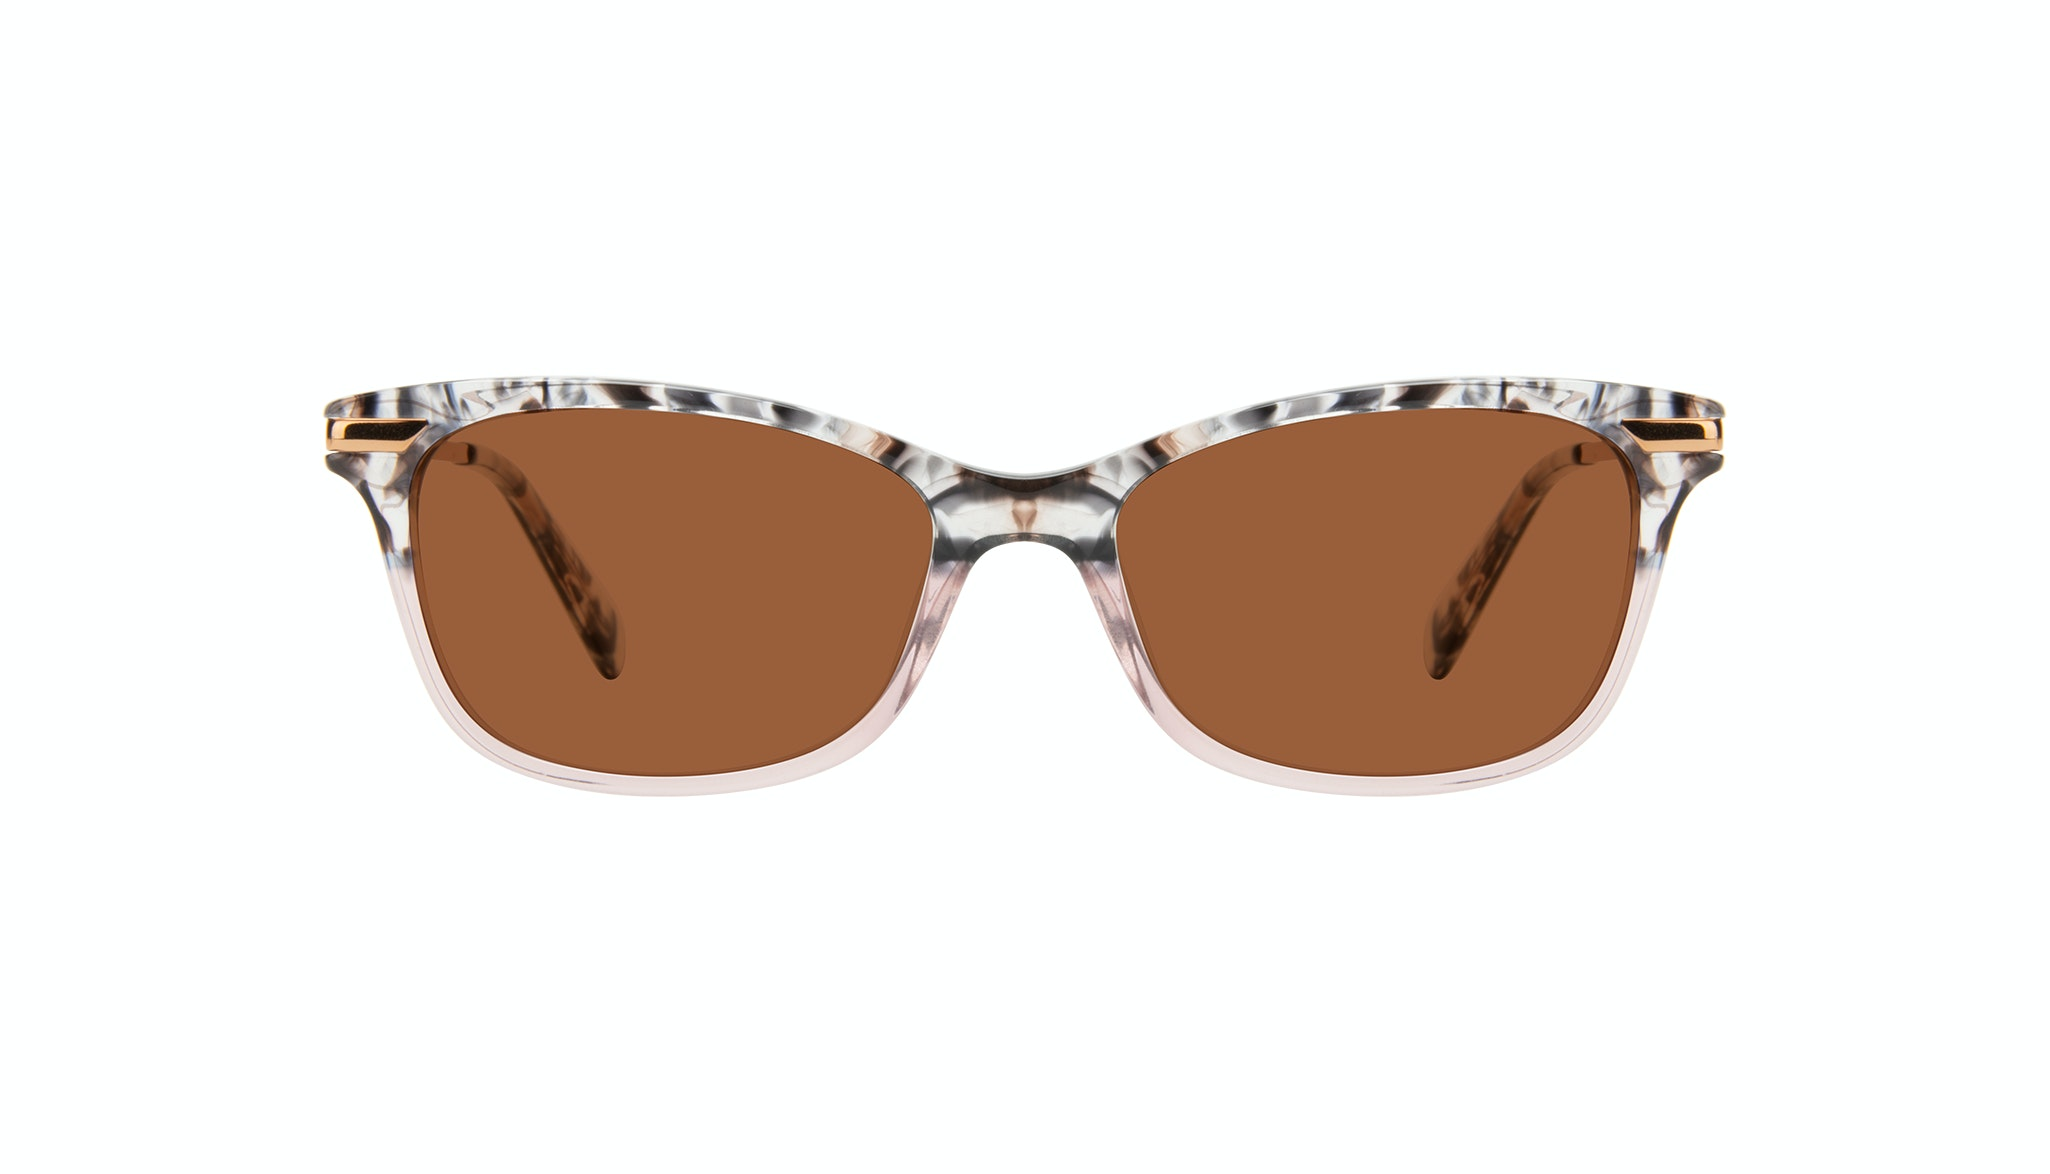 Affordable Fashion Glasses Rectangle Sunglasses Women Comet II Carbone Pink Face